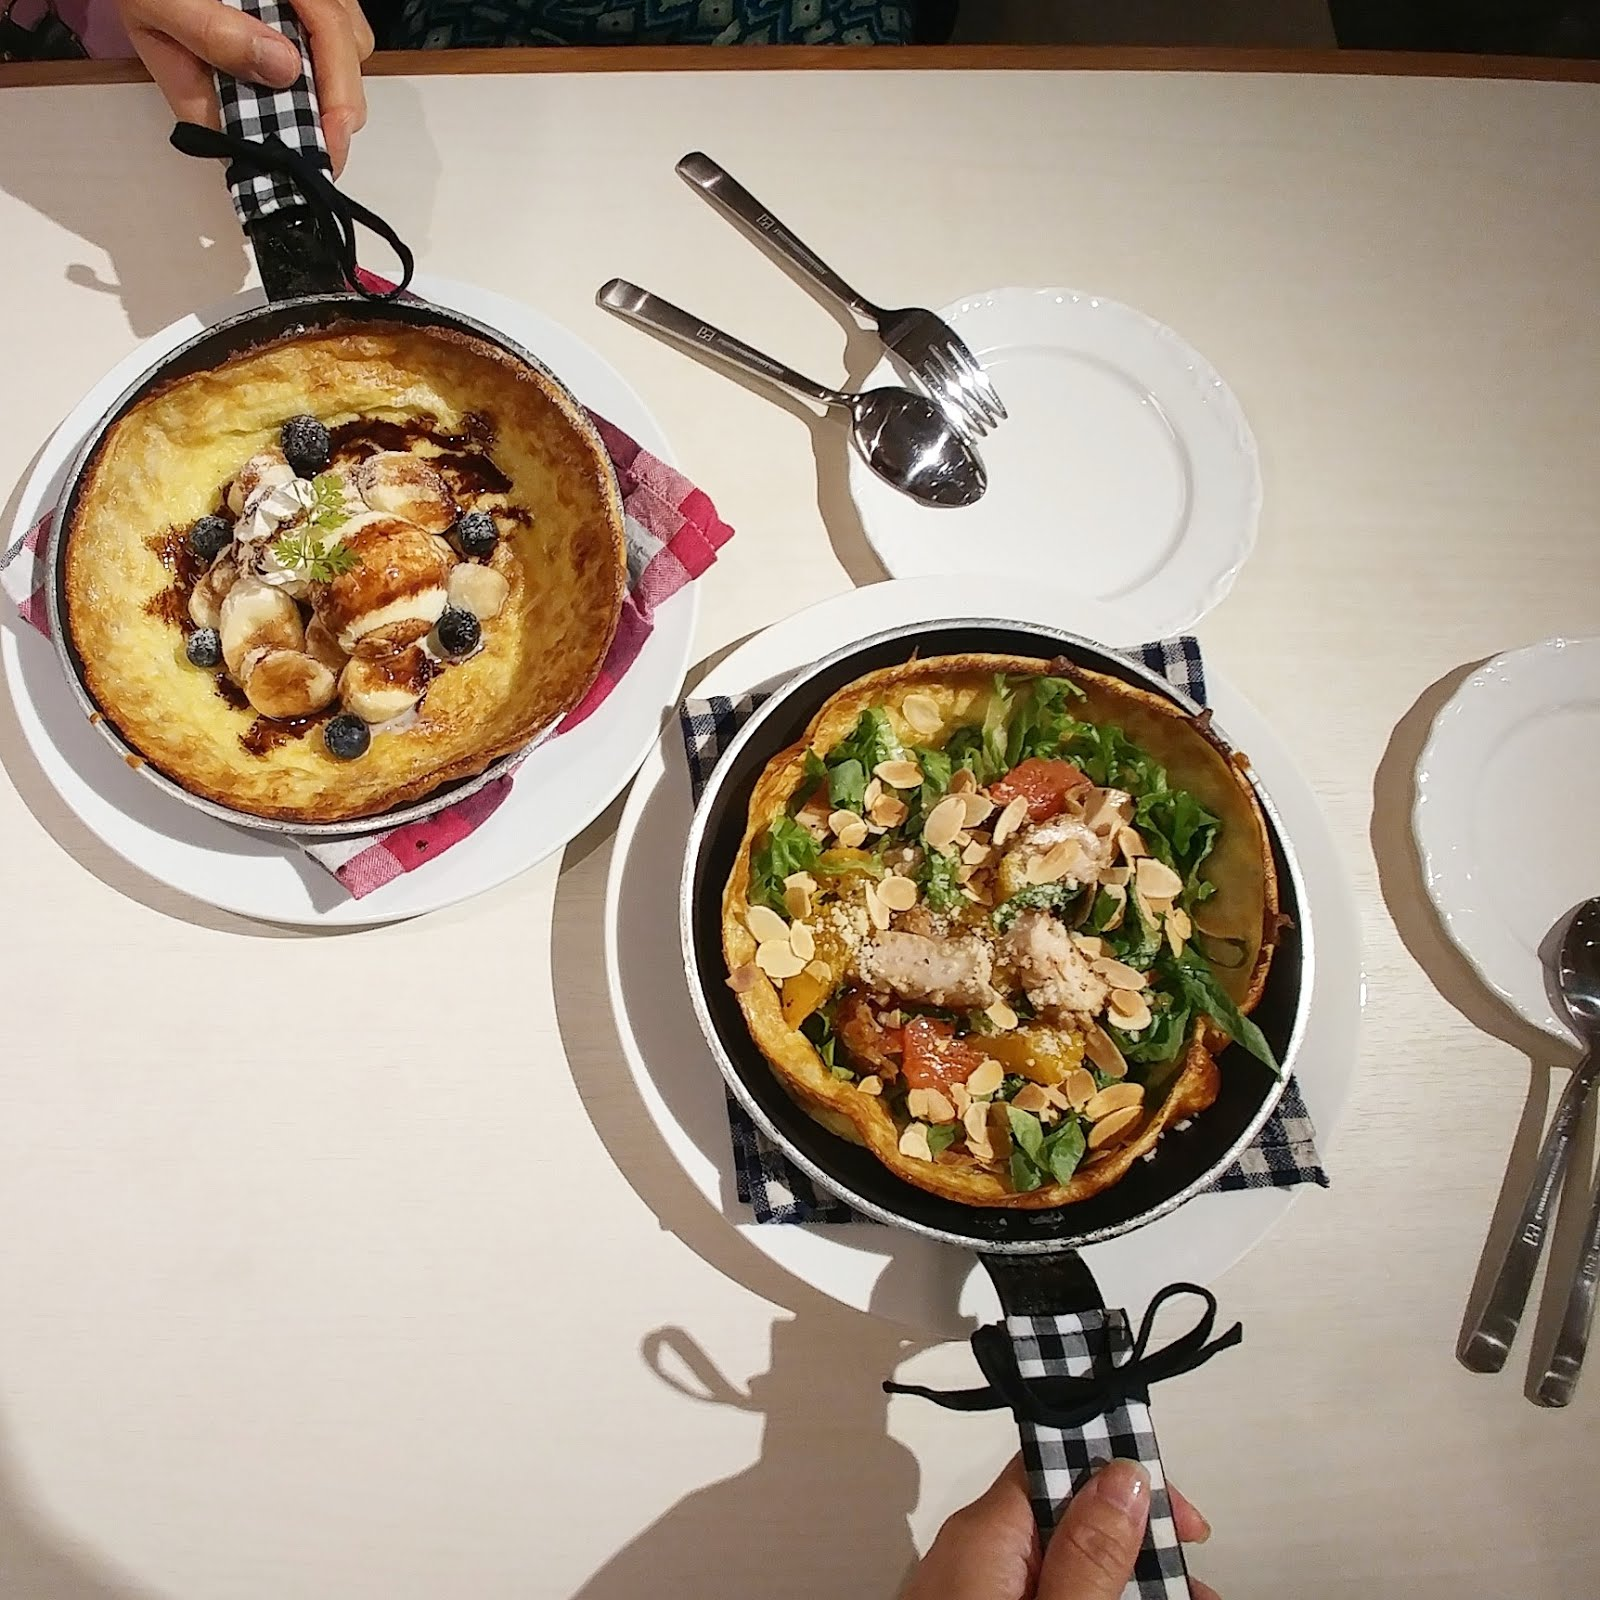 Cafe hoppiing in singapore my babhy oh dutch baby cafe jiahui muses cafe hoppiing in singapore my babhy oh dutch baby cafe forumfinder Choice Image